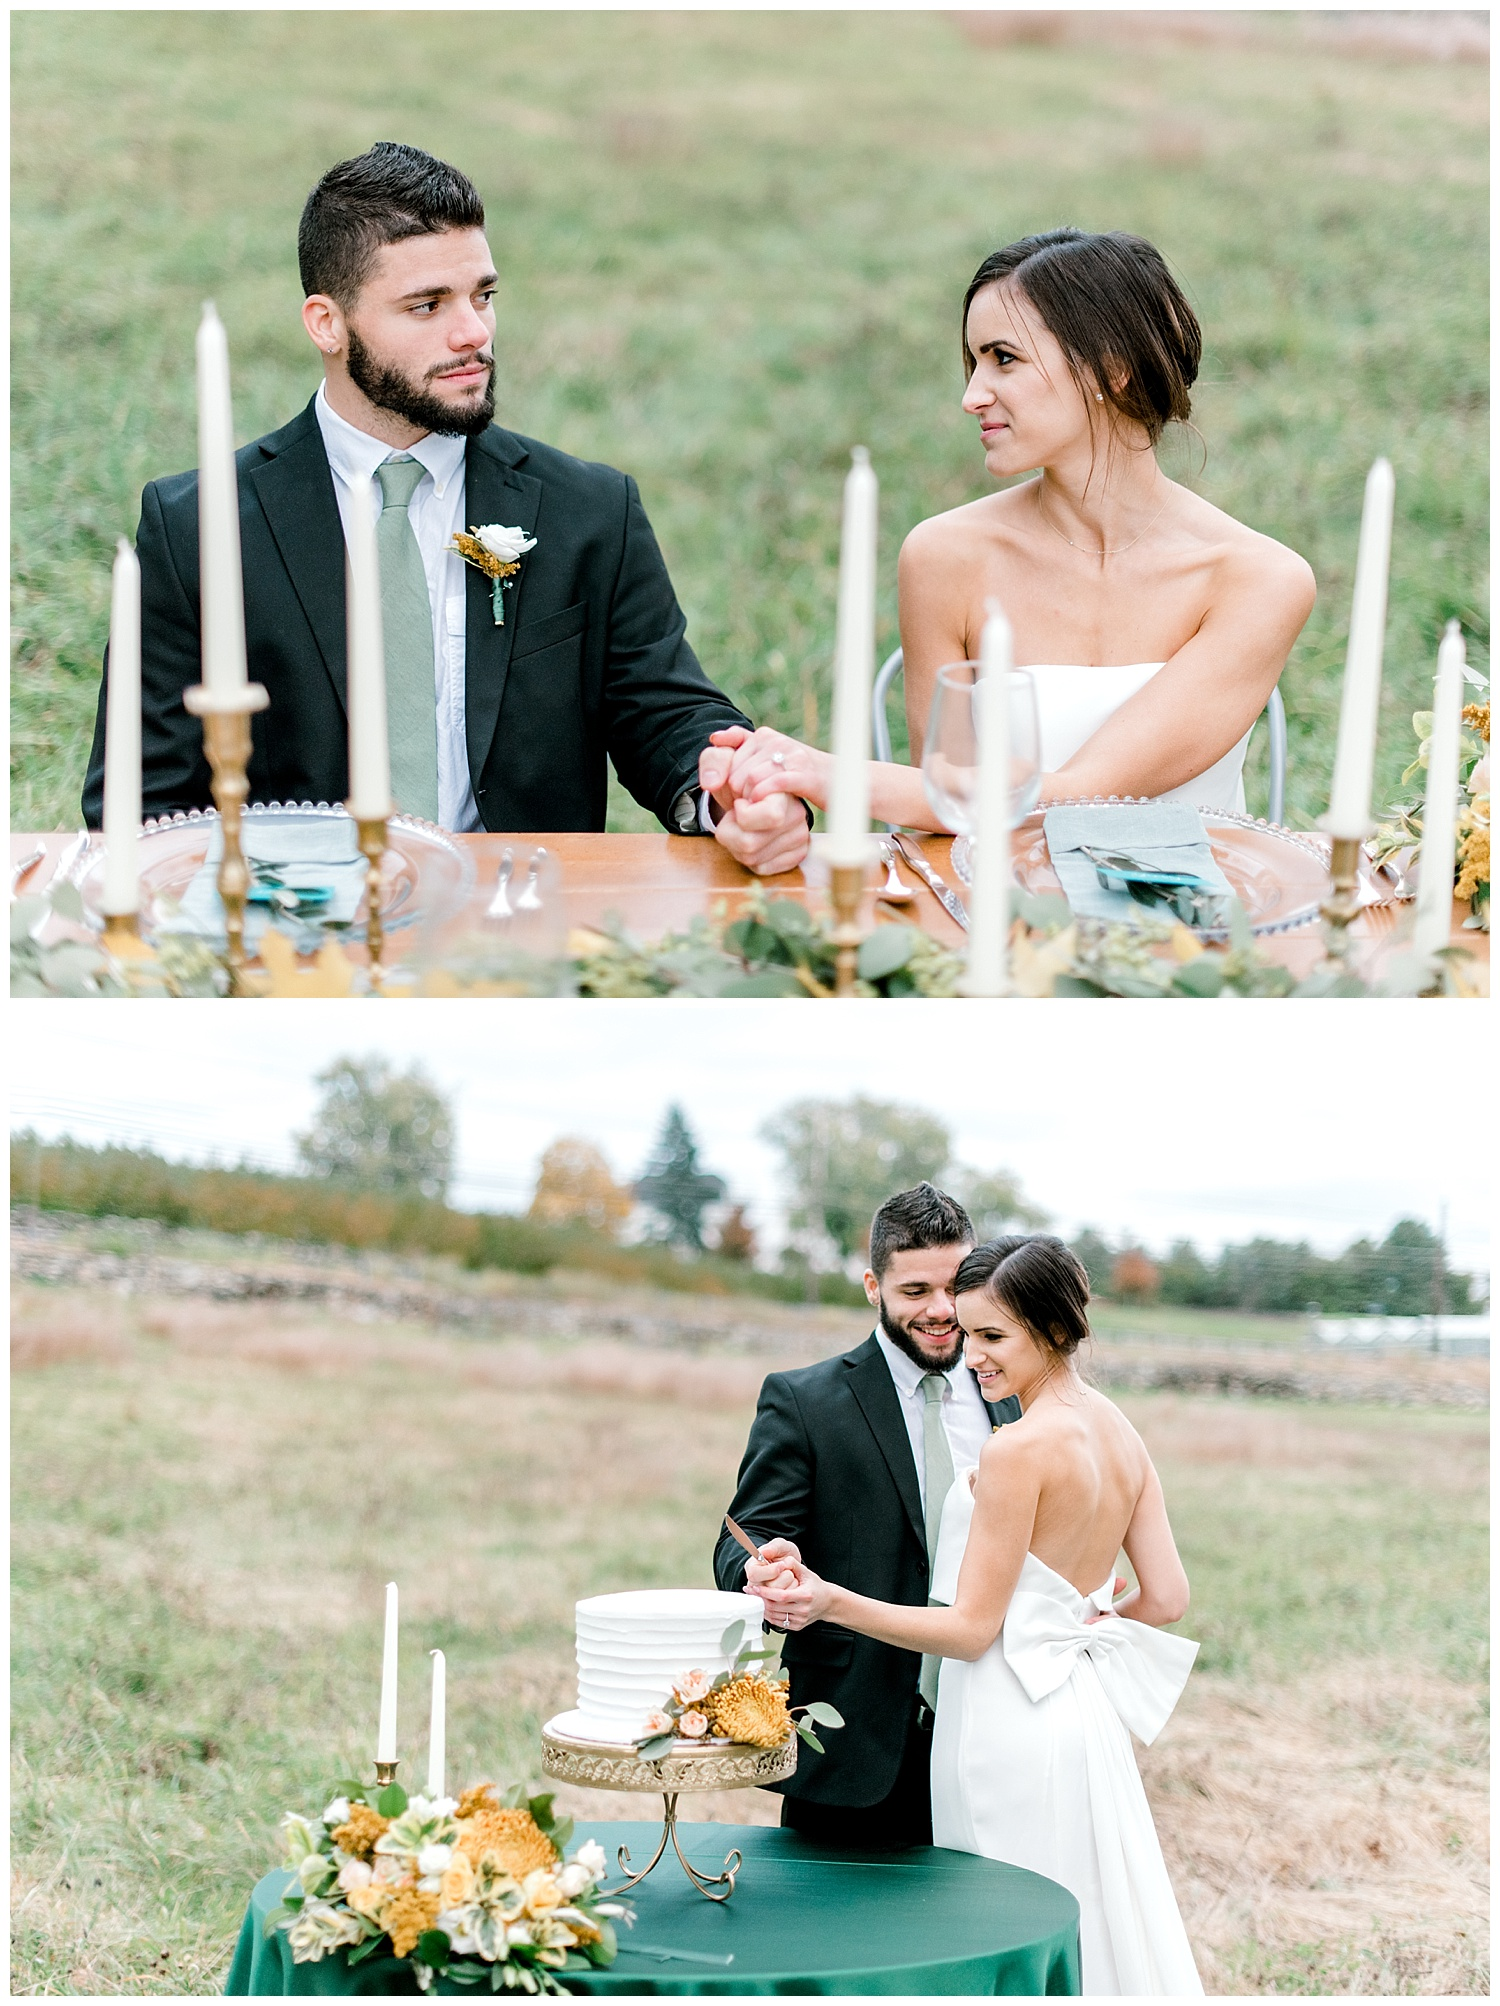 pompositticut-farm-fall-wedding-photography-hudson-massachusetts-photo-32.jpg